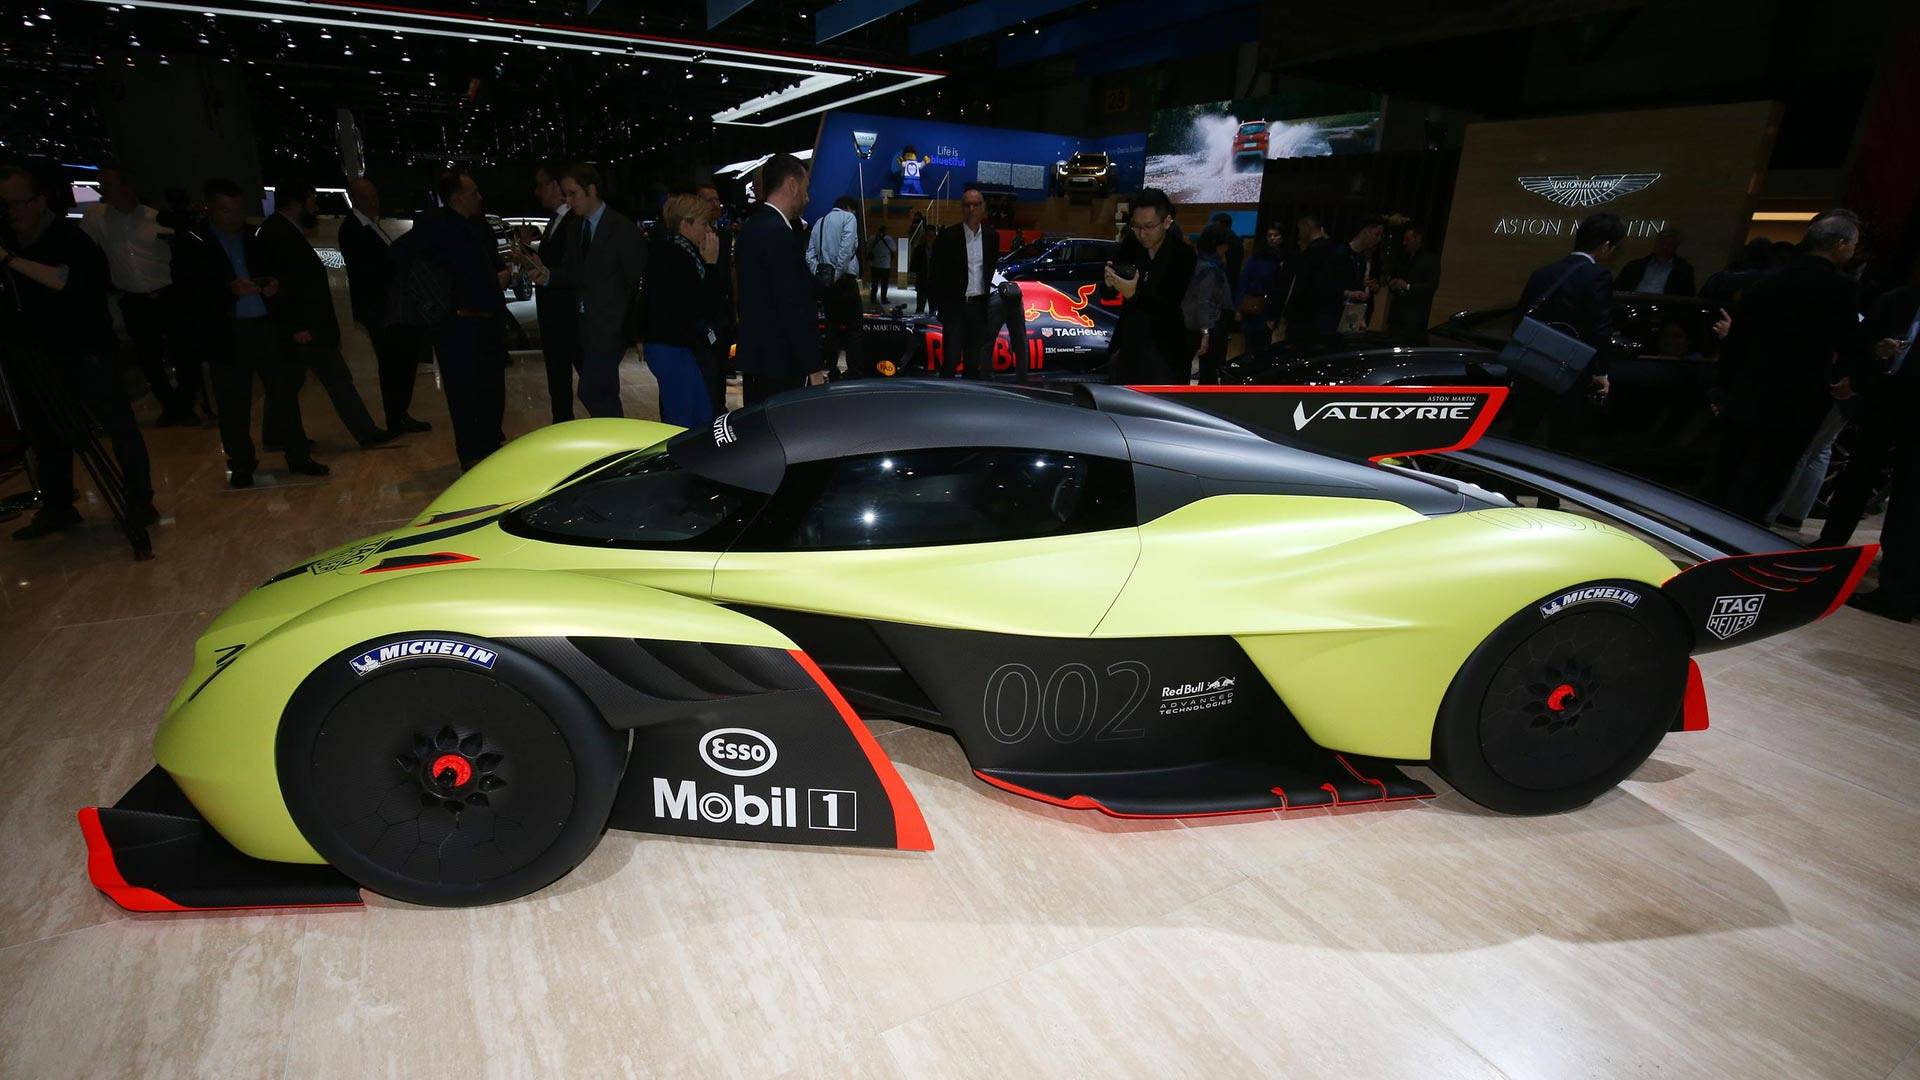 Aston Martin Valkyrie Amr Pro S Stats Might Be Underestimated